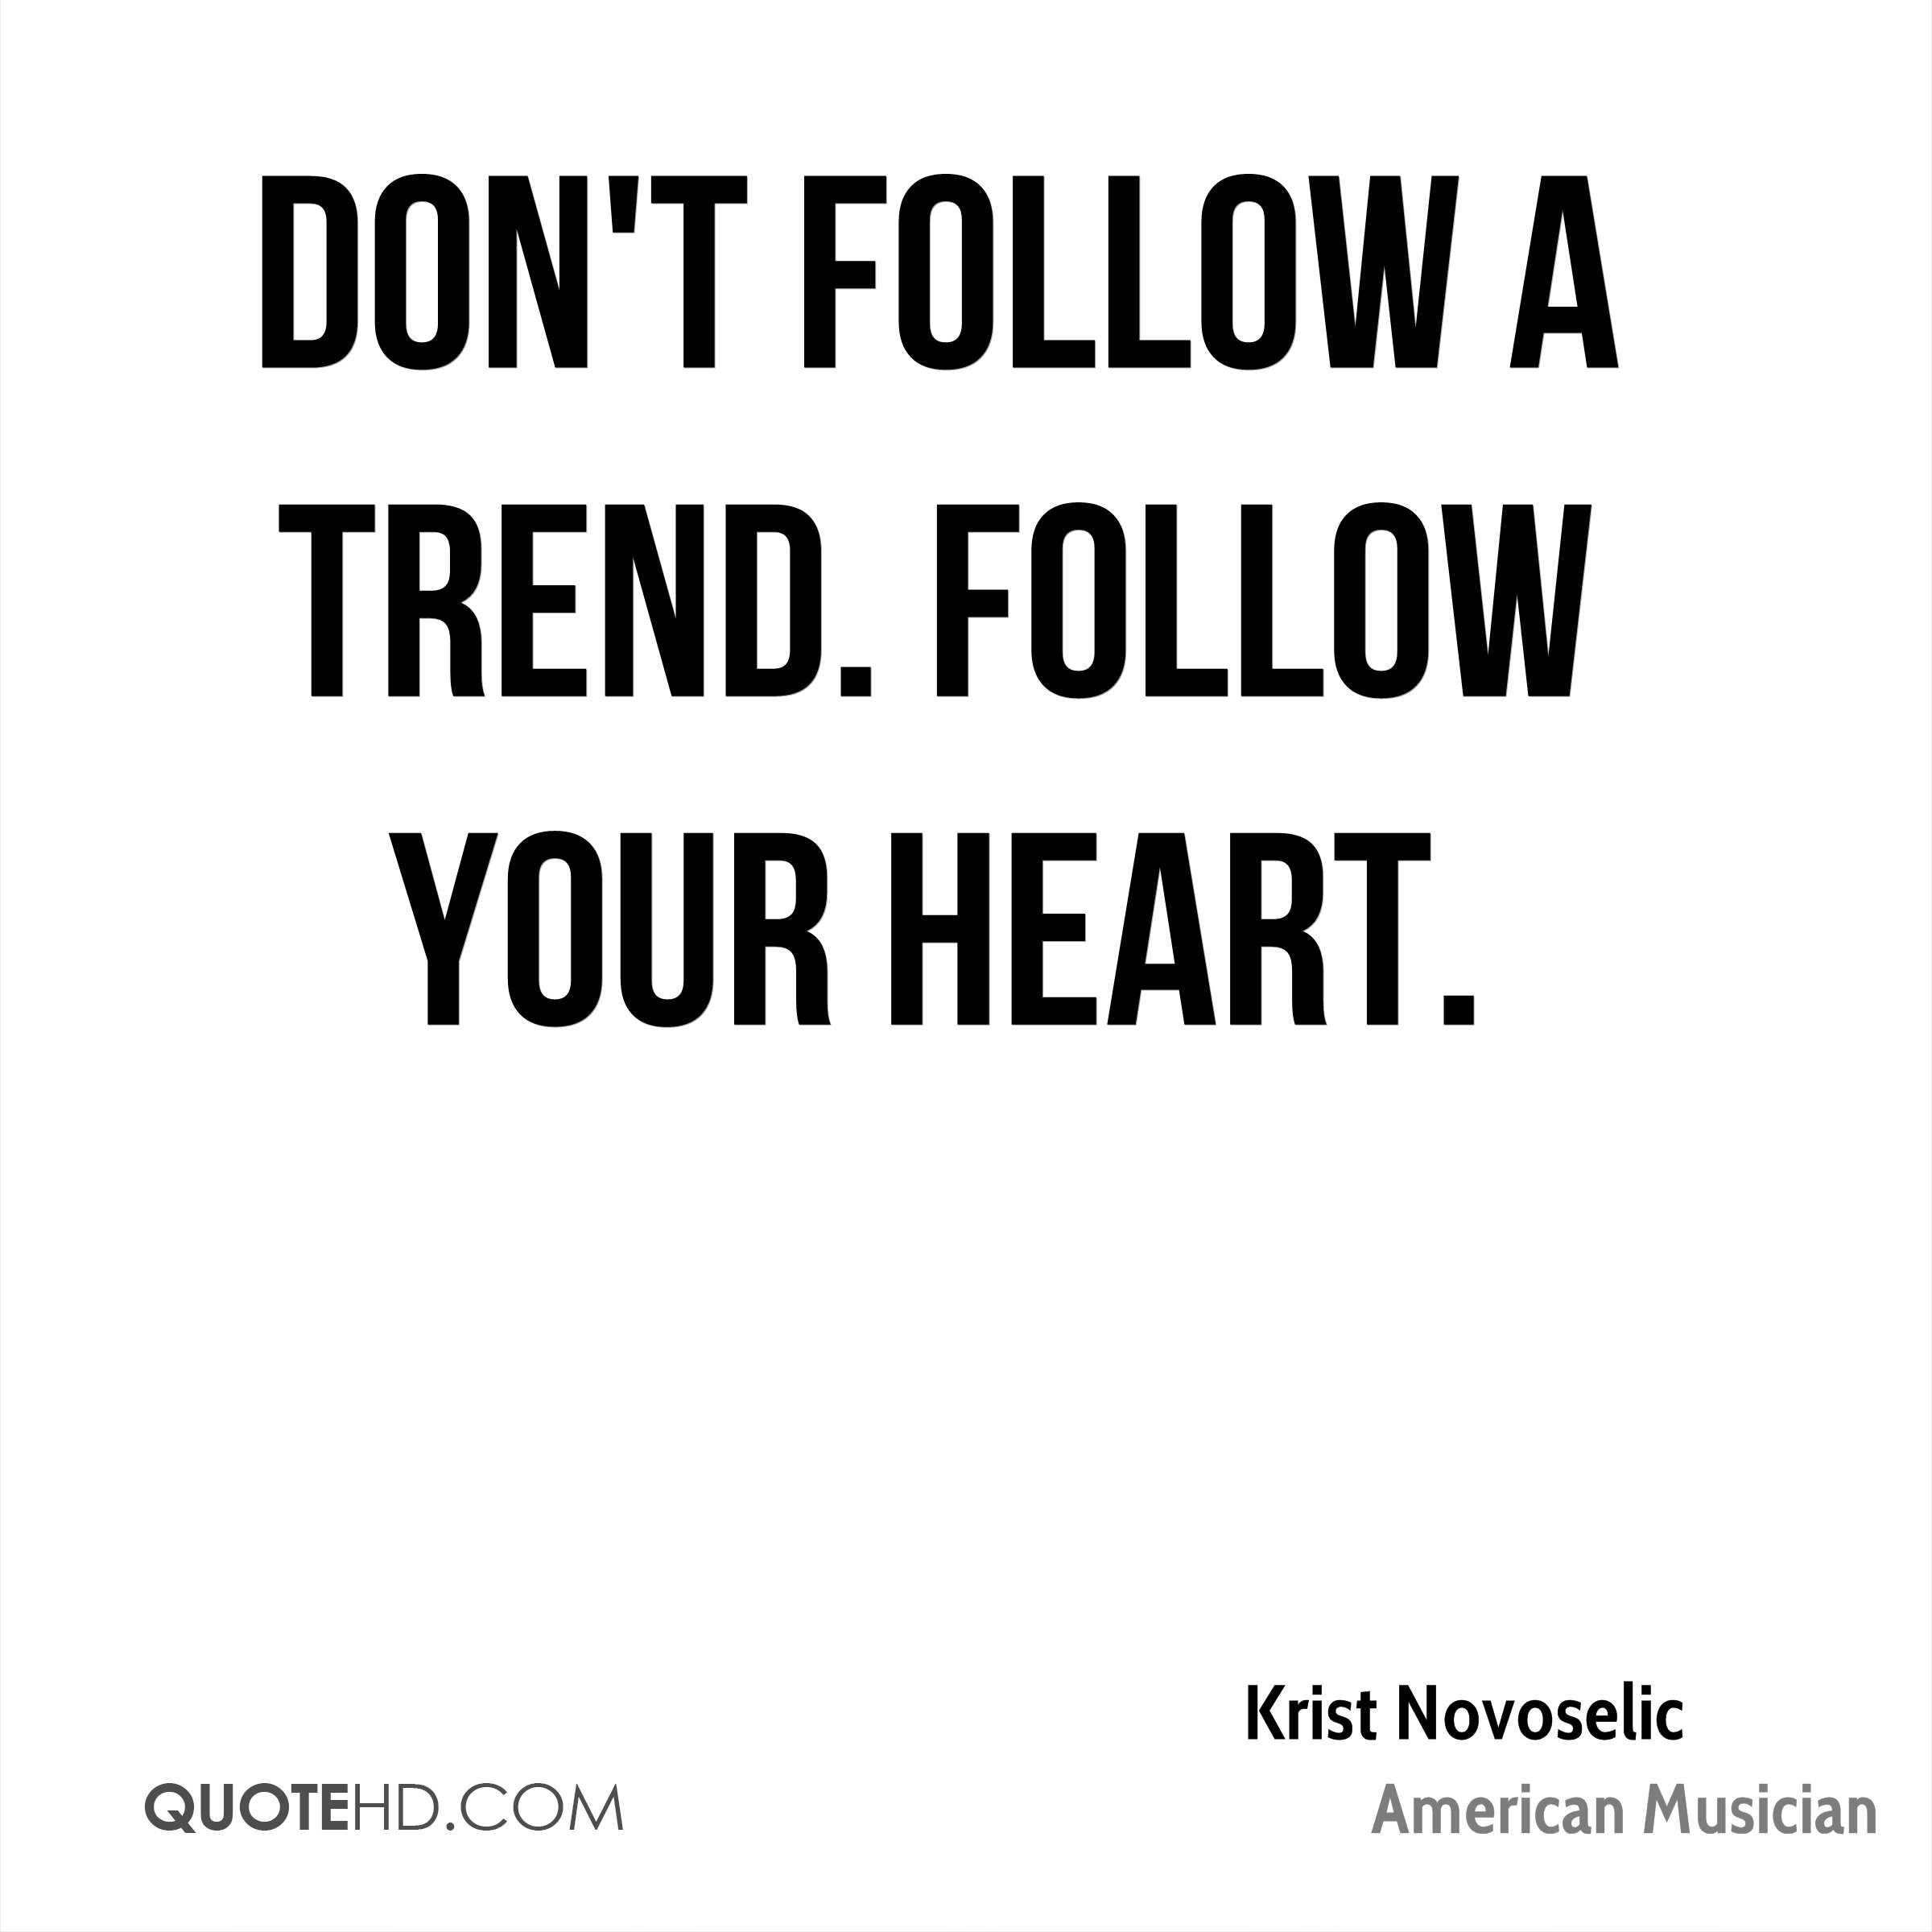 Don't follow a trend. Follow your heart.